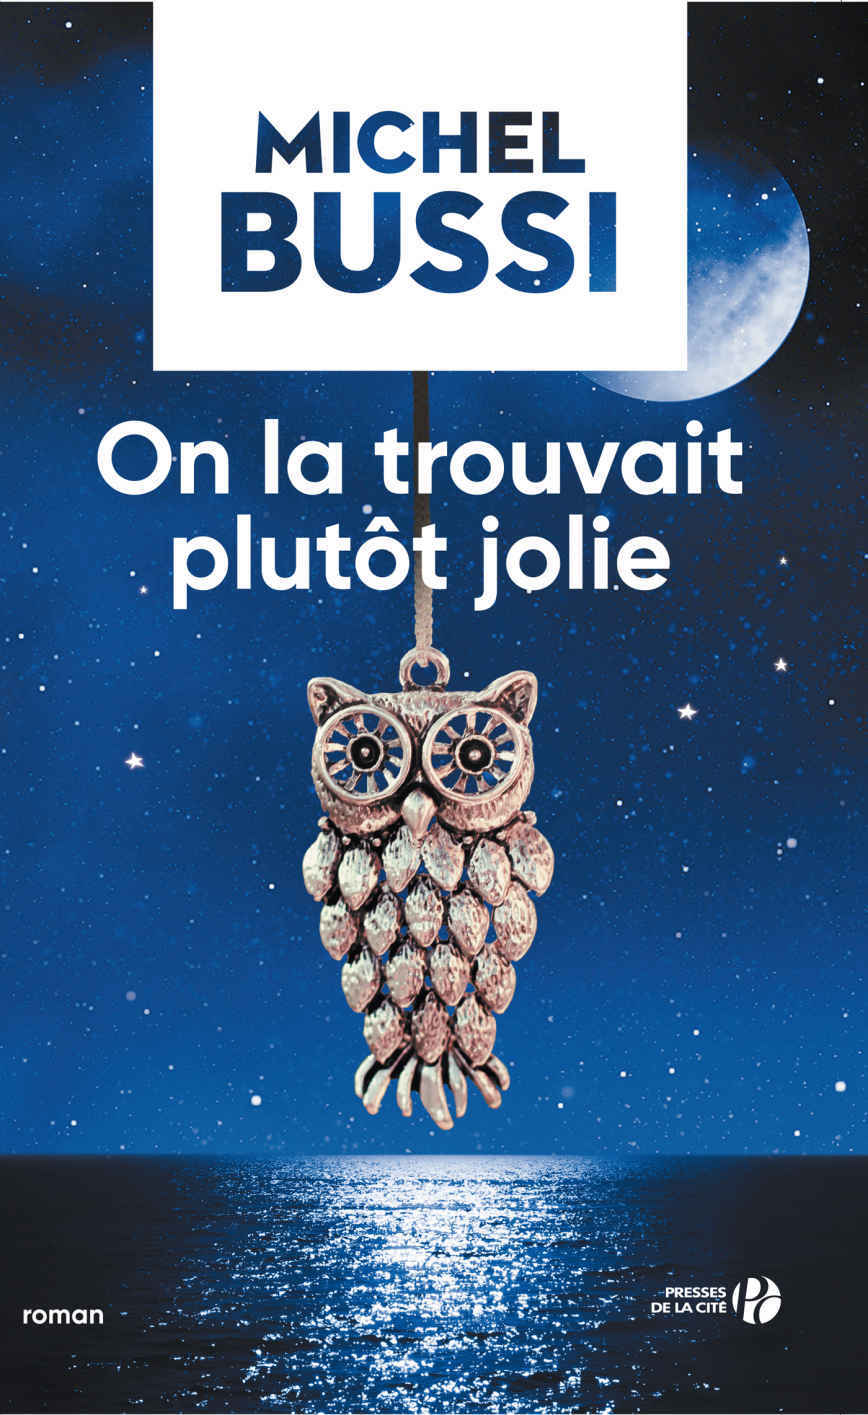 on-la-trouvait-plutot-jolie-michel-bussi-critique-avis-epub